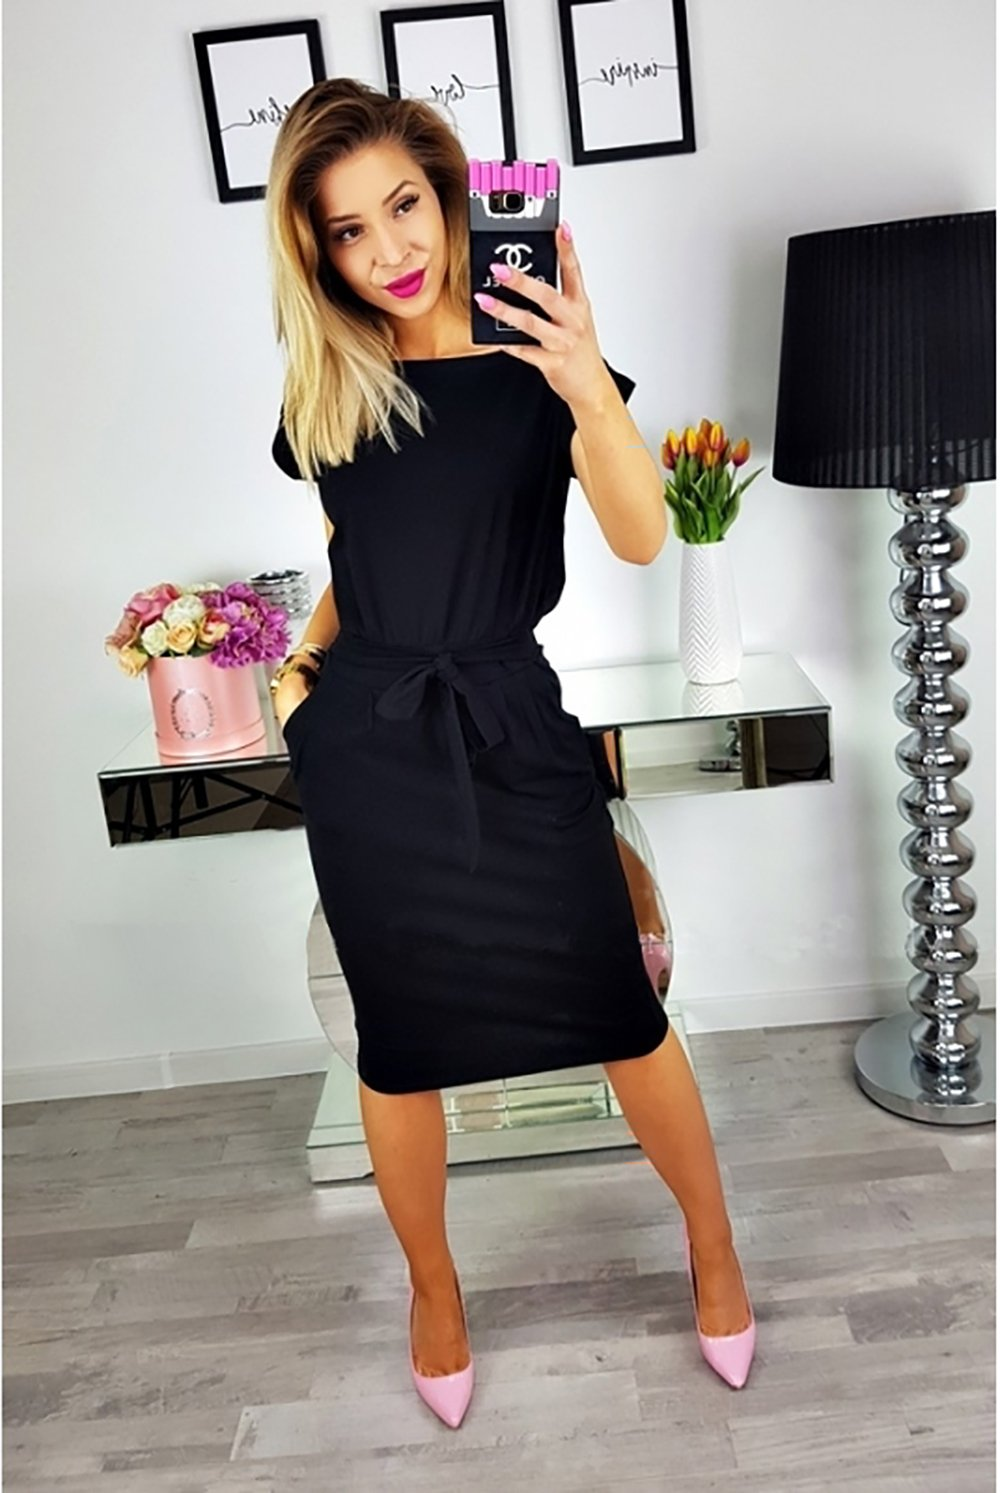 PRETTYGARDEN-Womens-2019-Casual-Short-Sleeve-Party-Bodycon-Sheath-Belted-Dress-with-Pockets